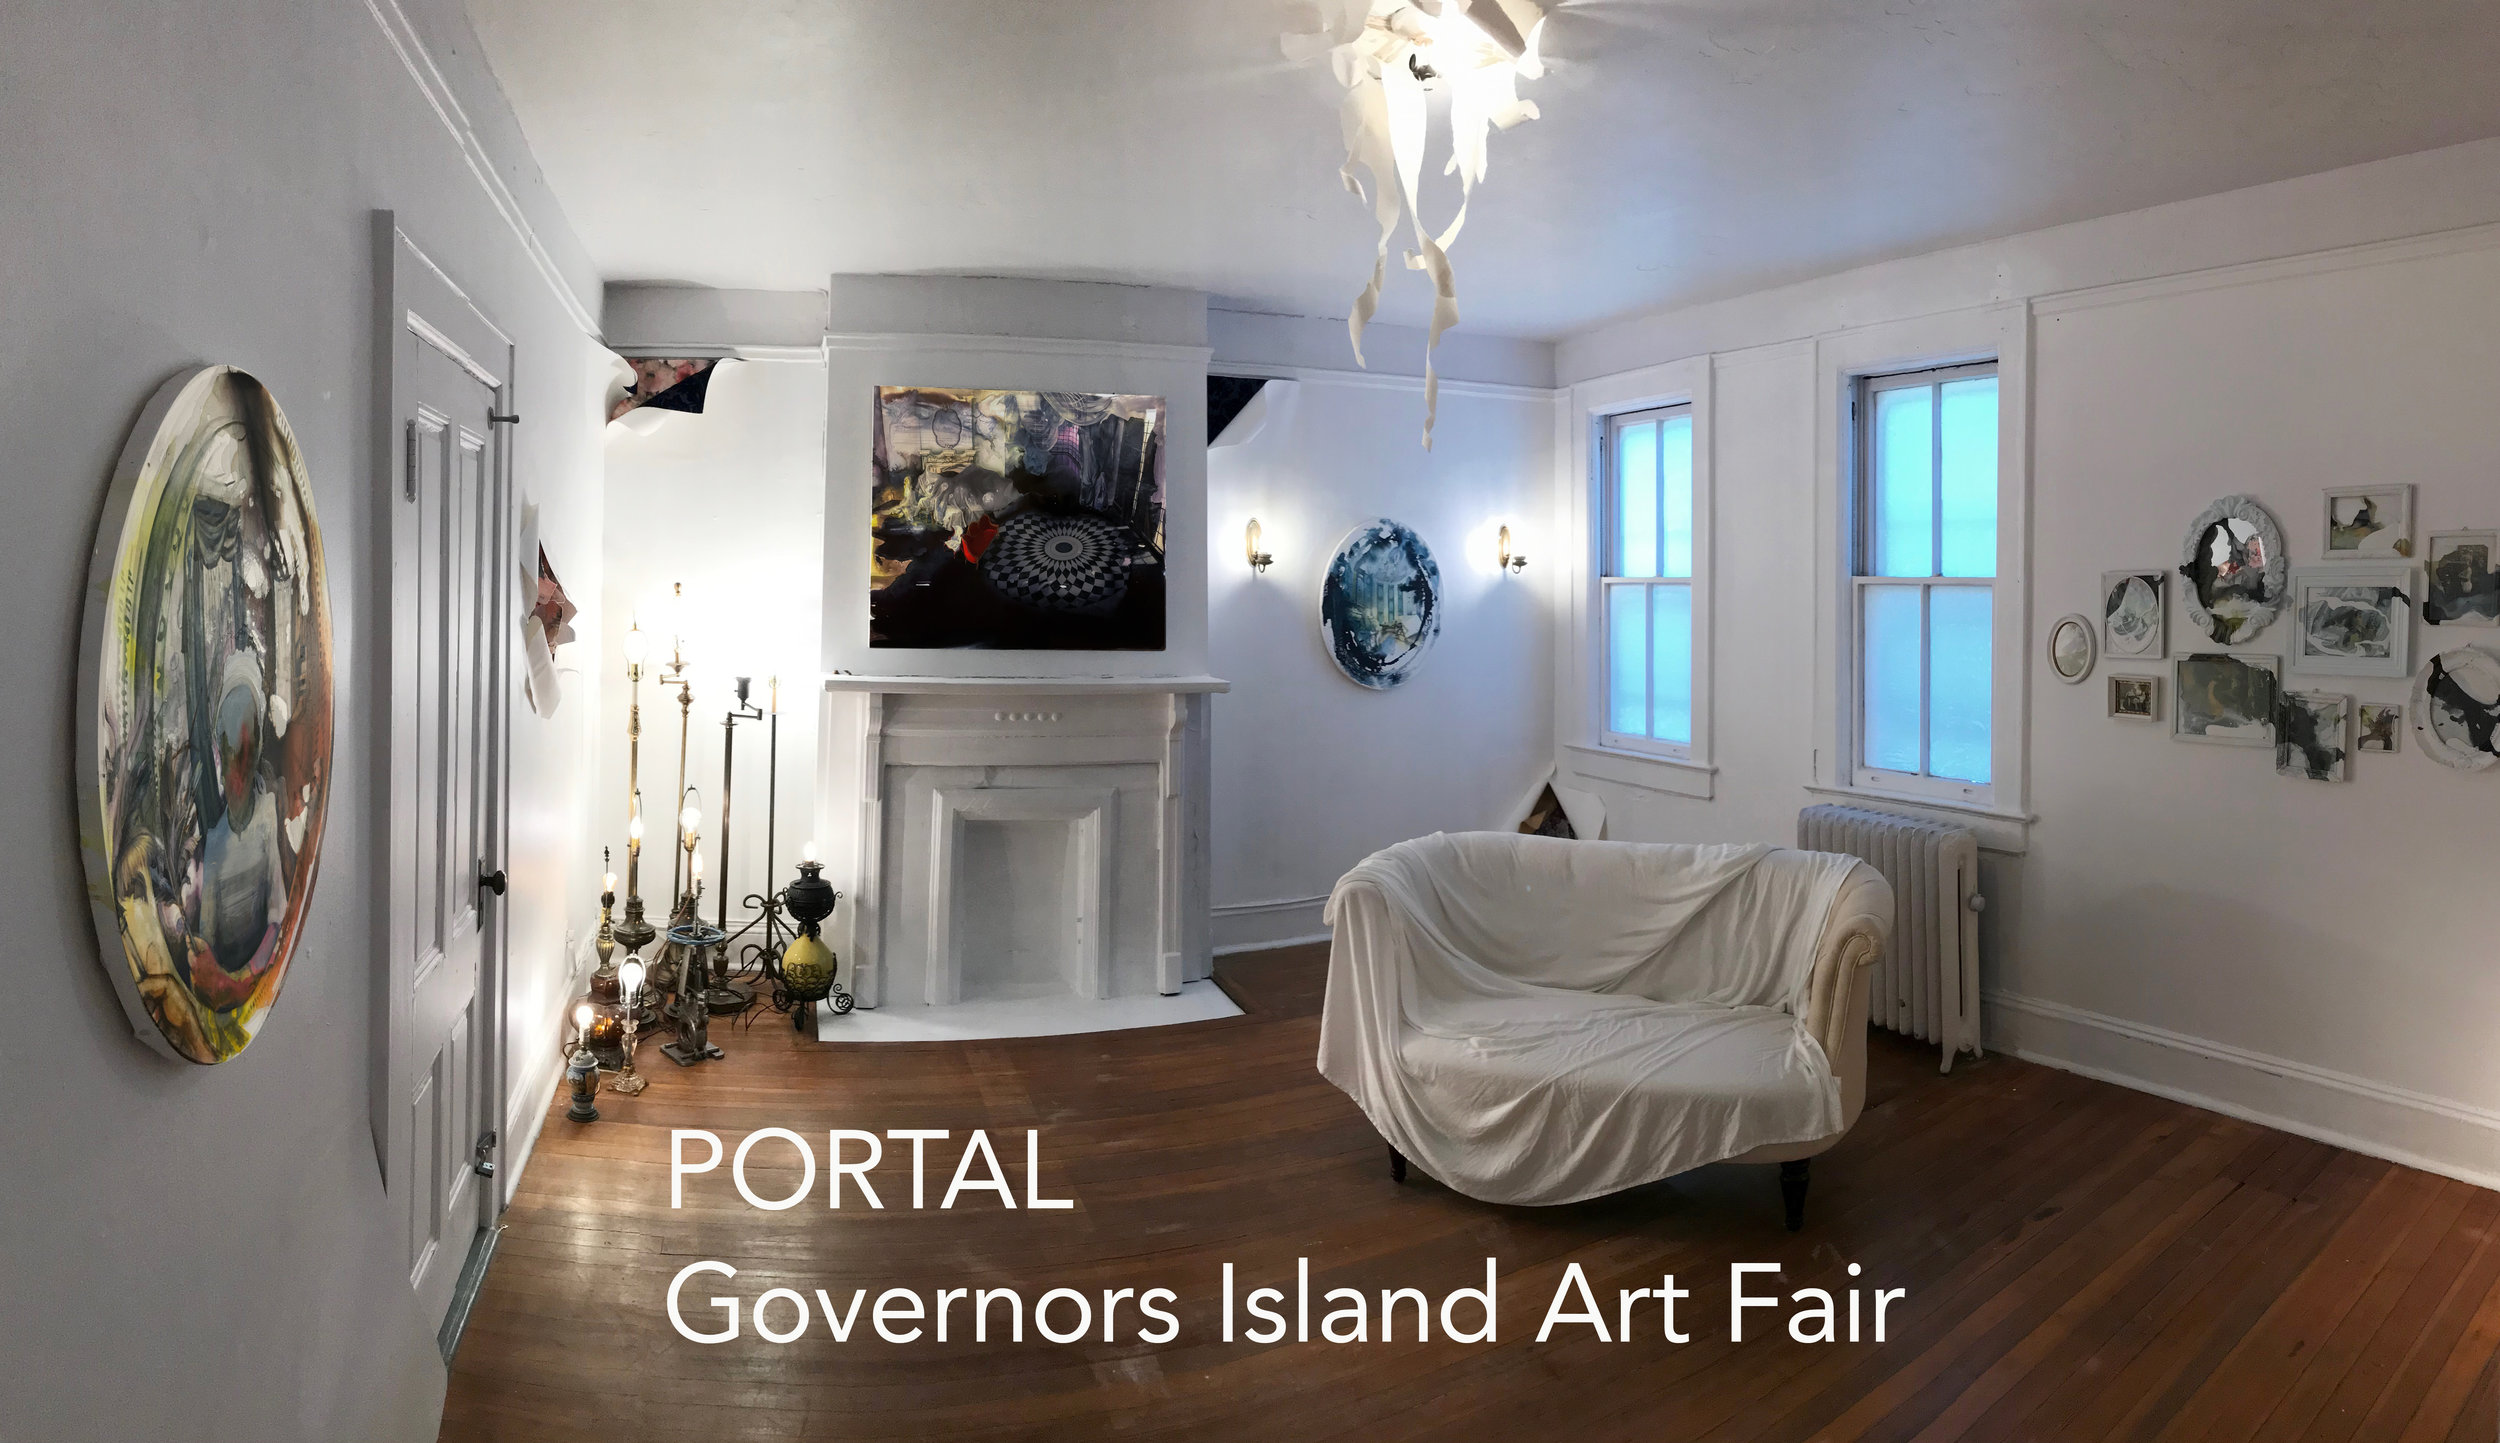 My work is included in  PORTAL: Governors Island Art Fair  run by 4Heads. I have an installation of new paintings in Colonel's Row, building 405B 2nd Floor. Opening Saturday August 31st until 9pm and on view weekends in September.